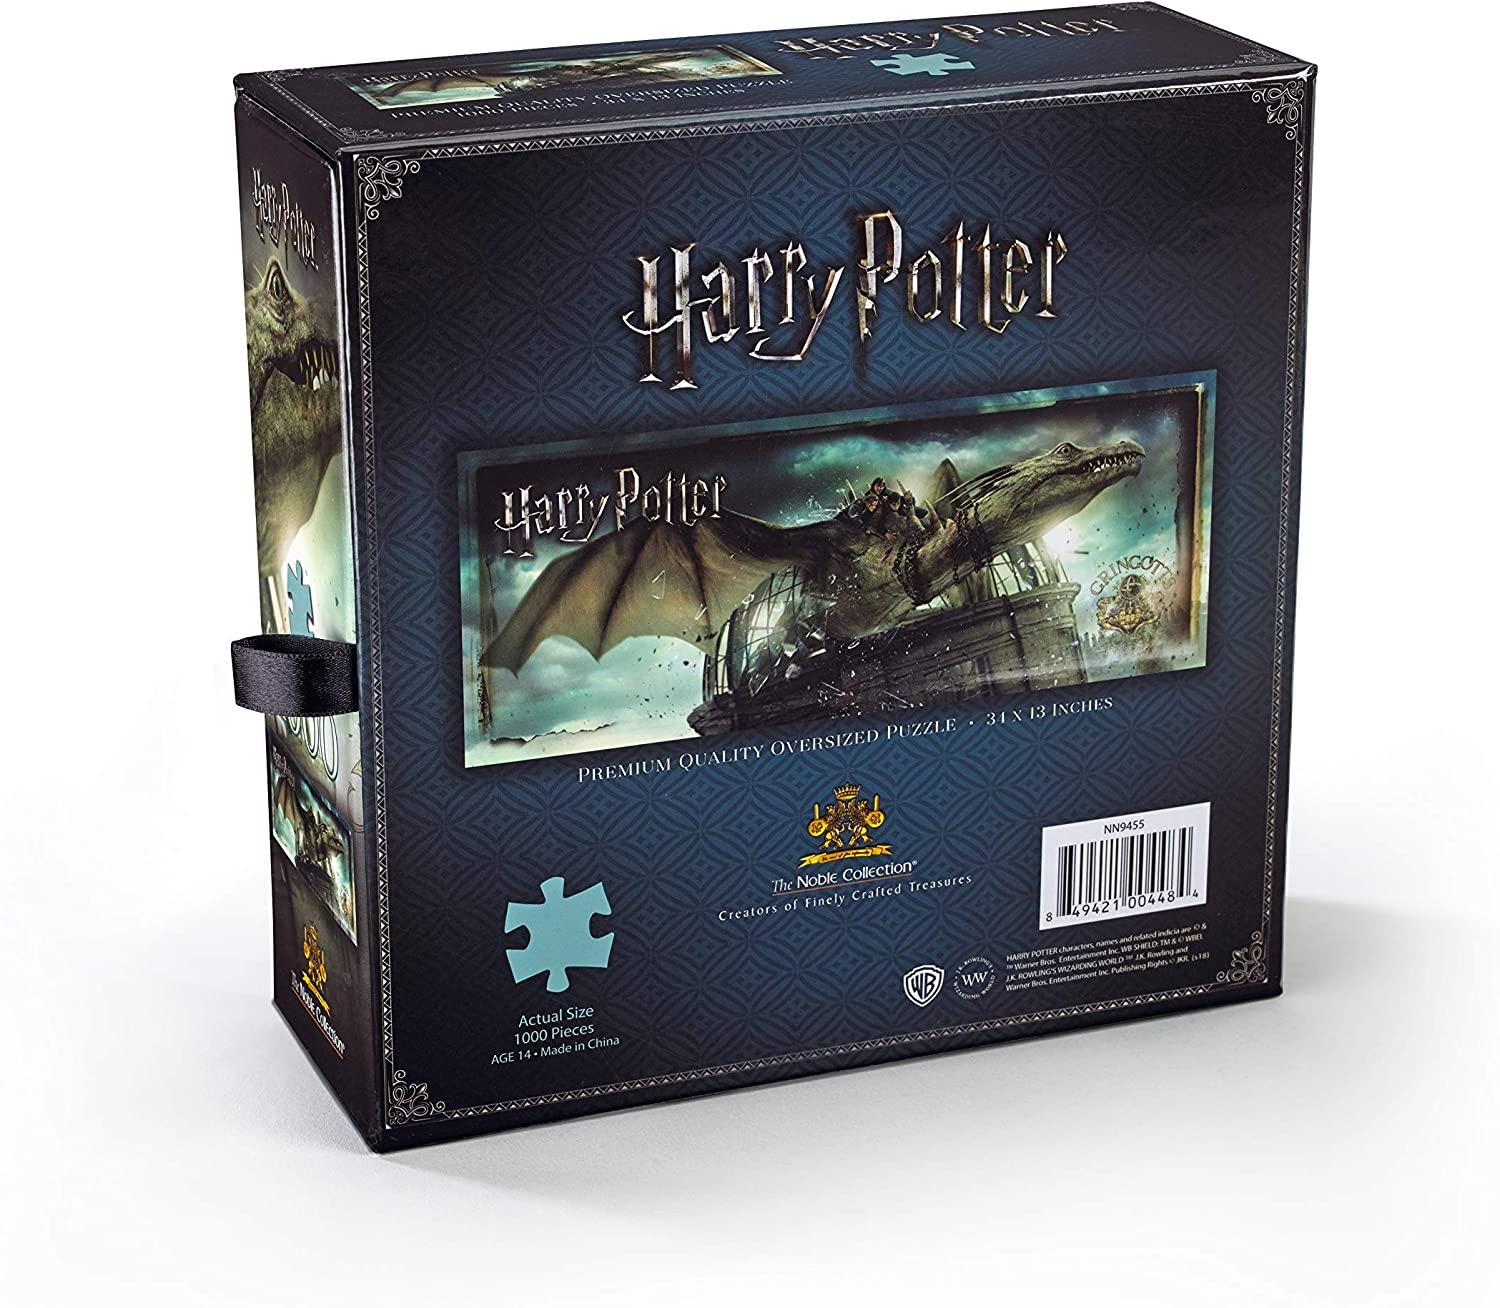 Puzzle evasion banque gringotts harry potter noble collection